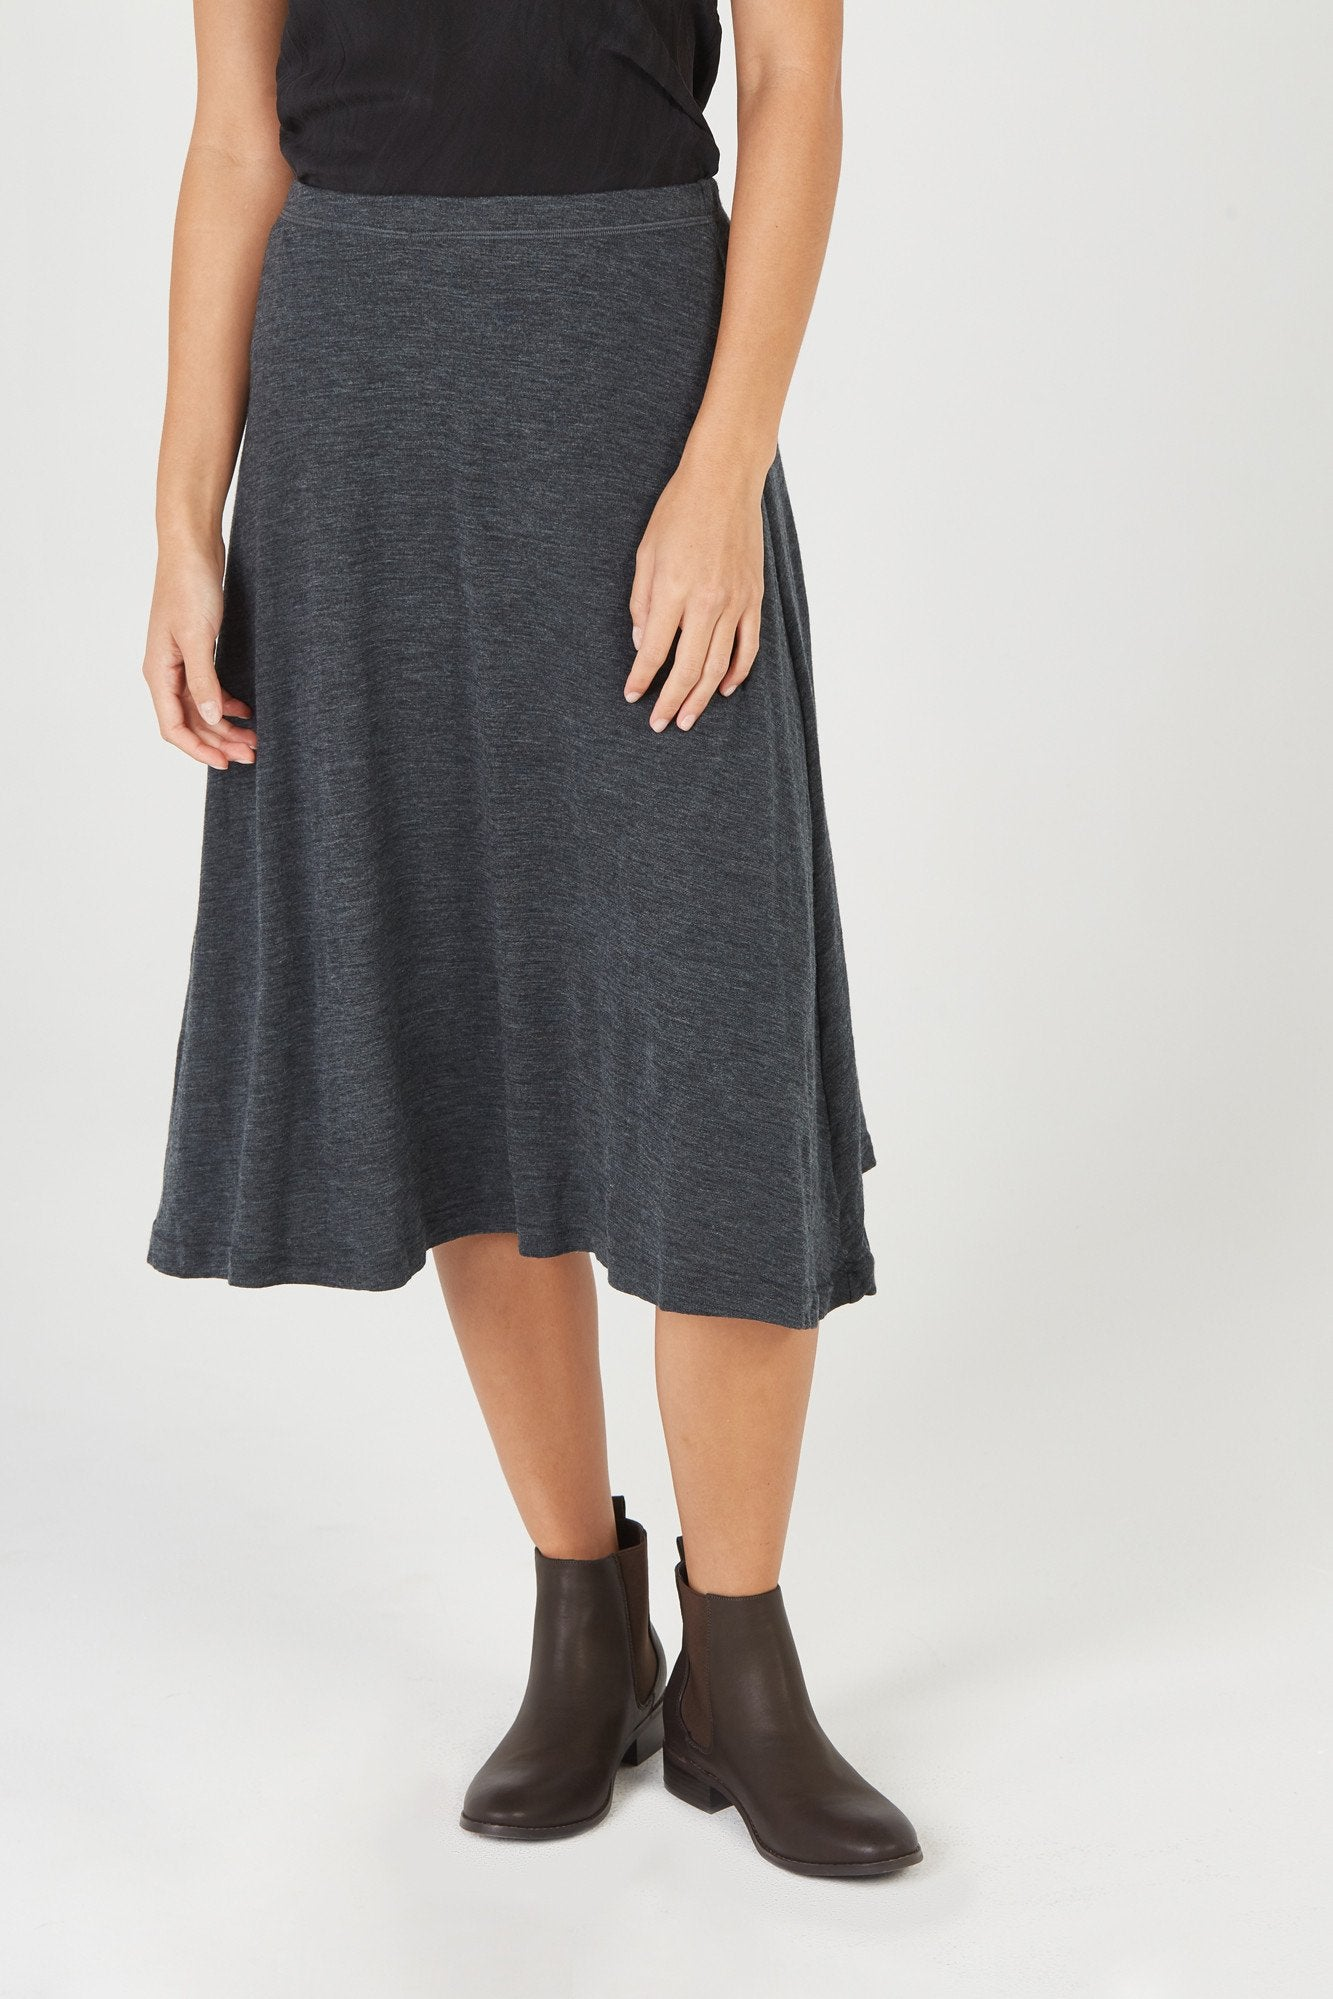 BOWIE SKIRT - CHARCOAL